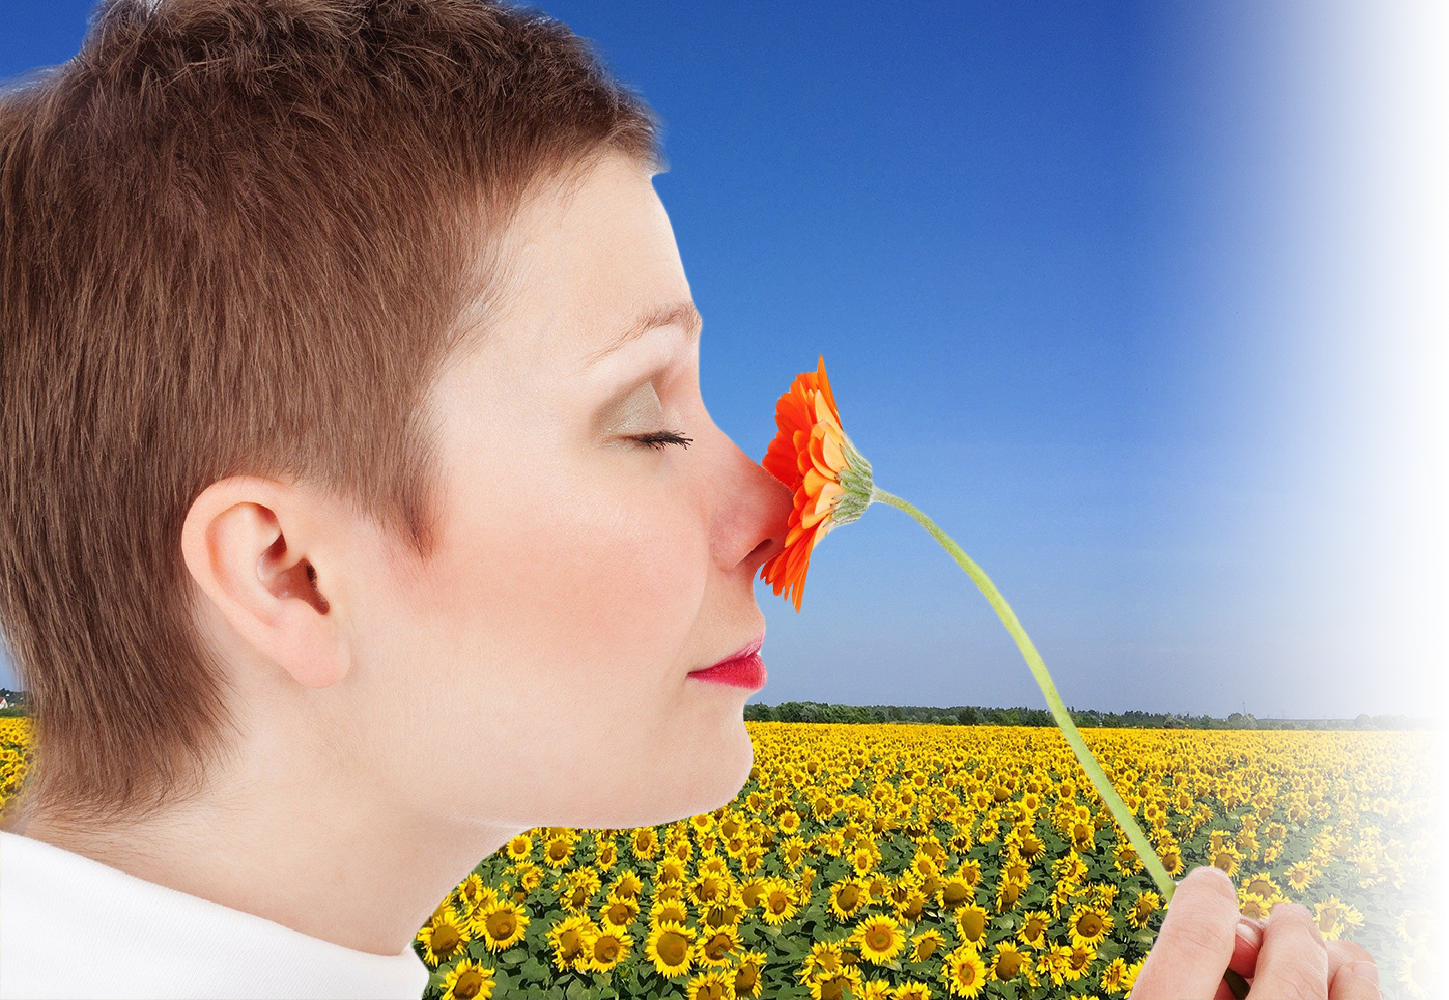 How do hay fever relief nasal sprays work?